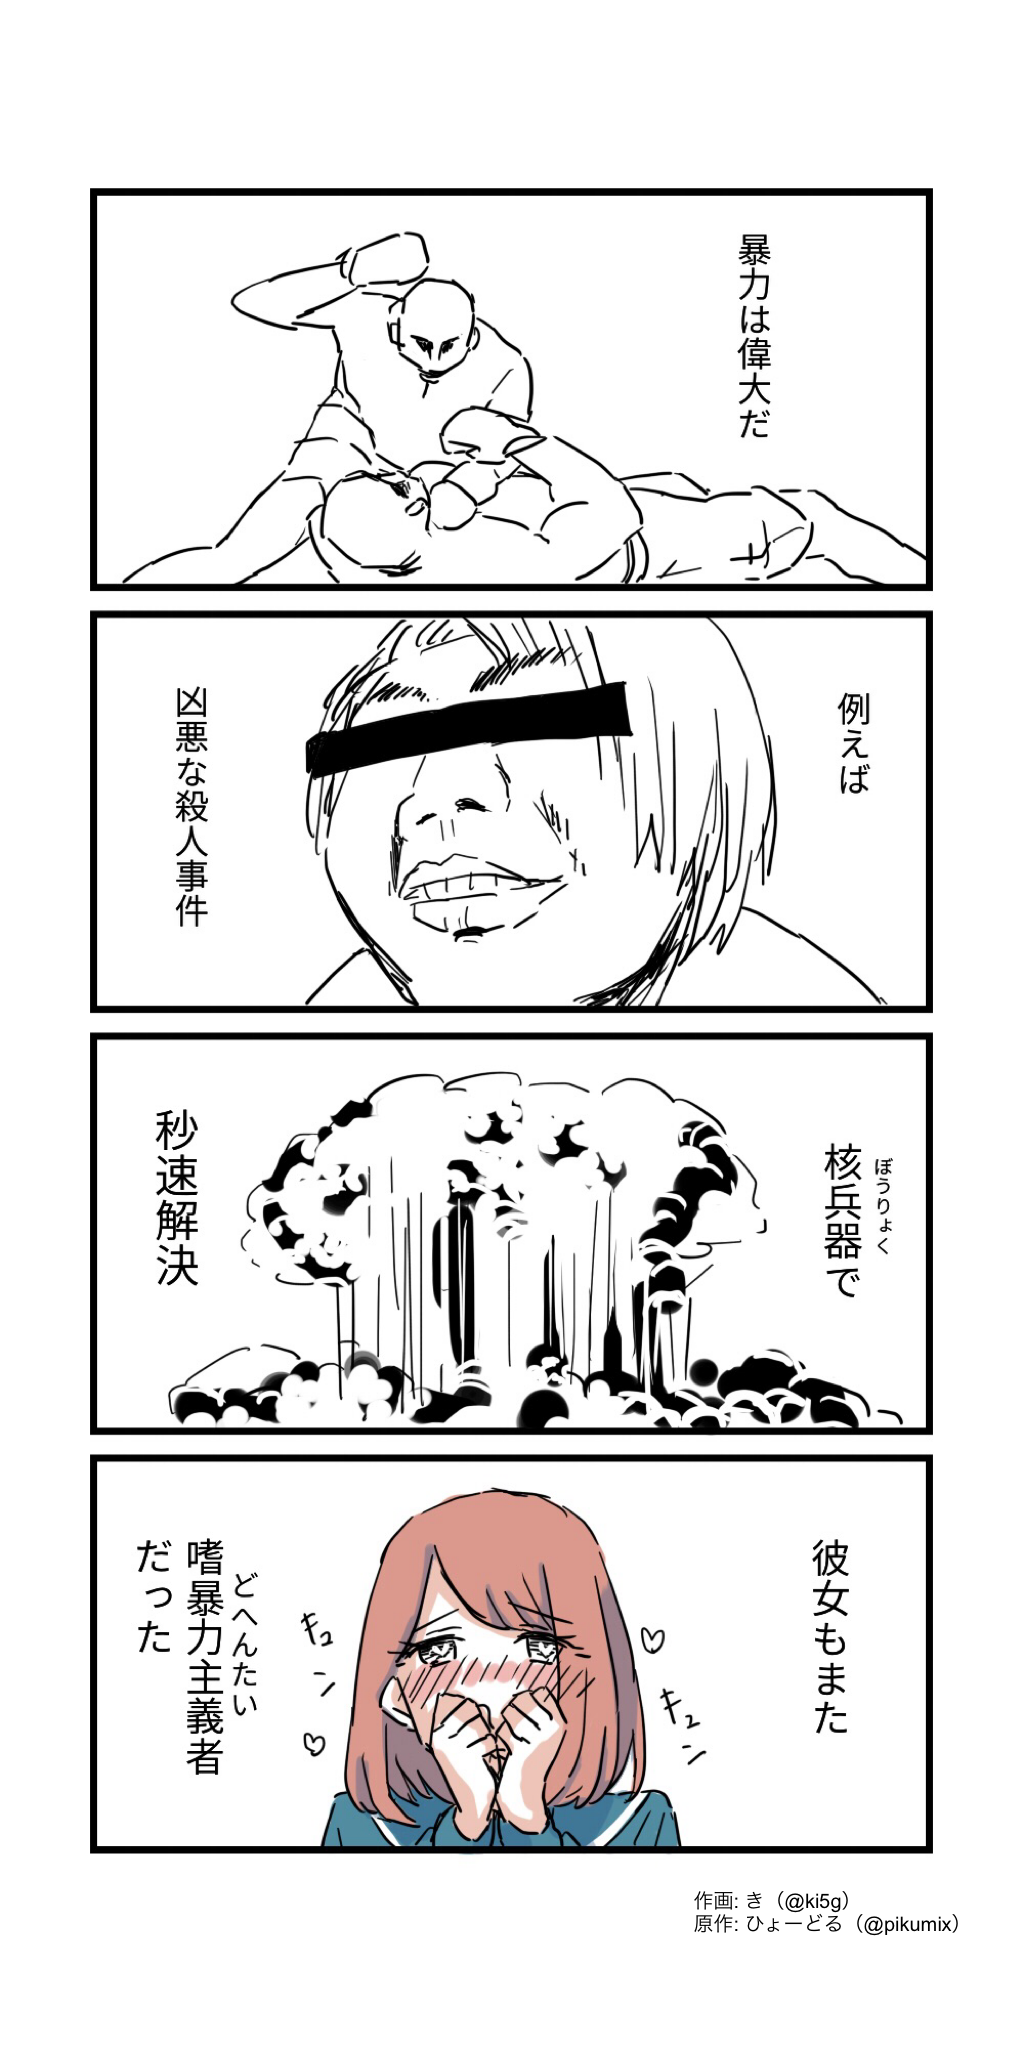 201906091251284fe.png